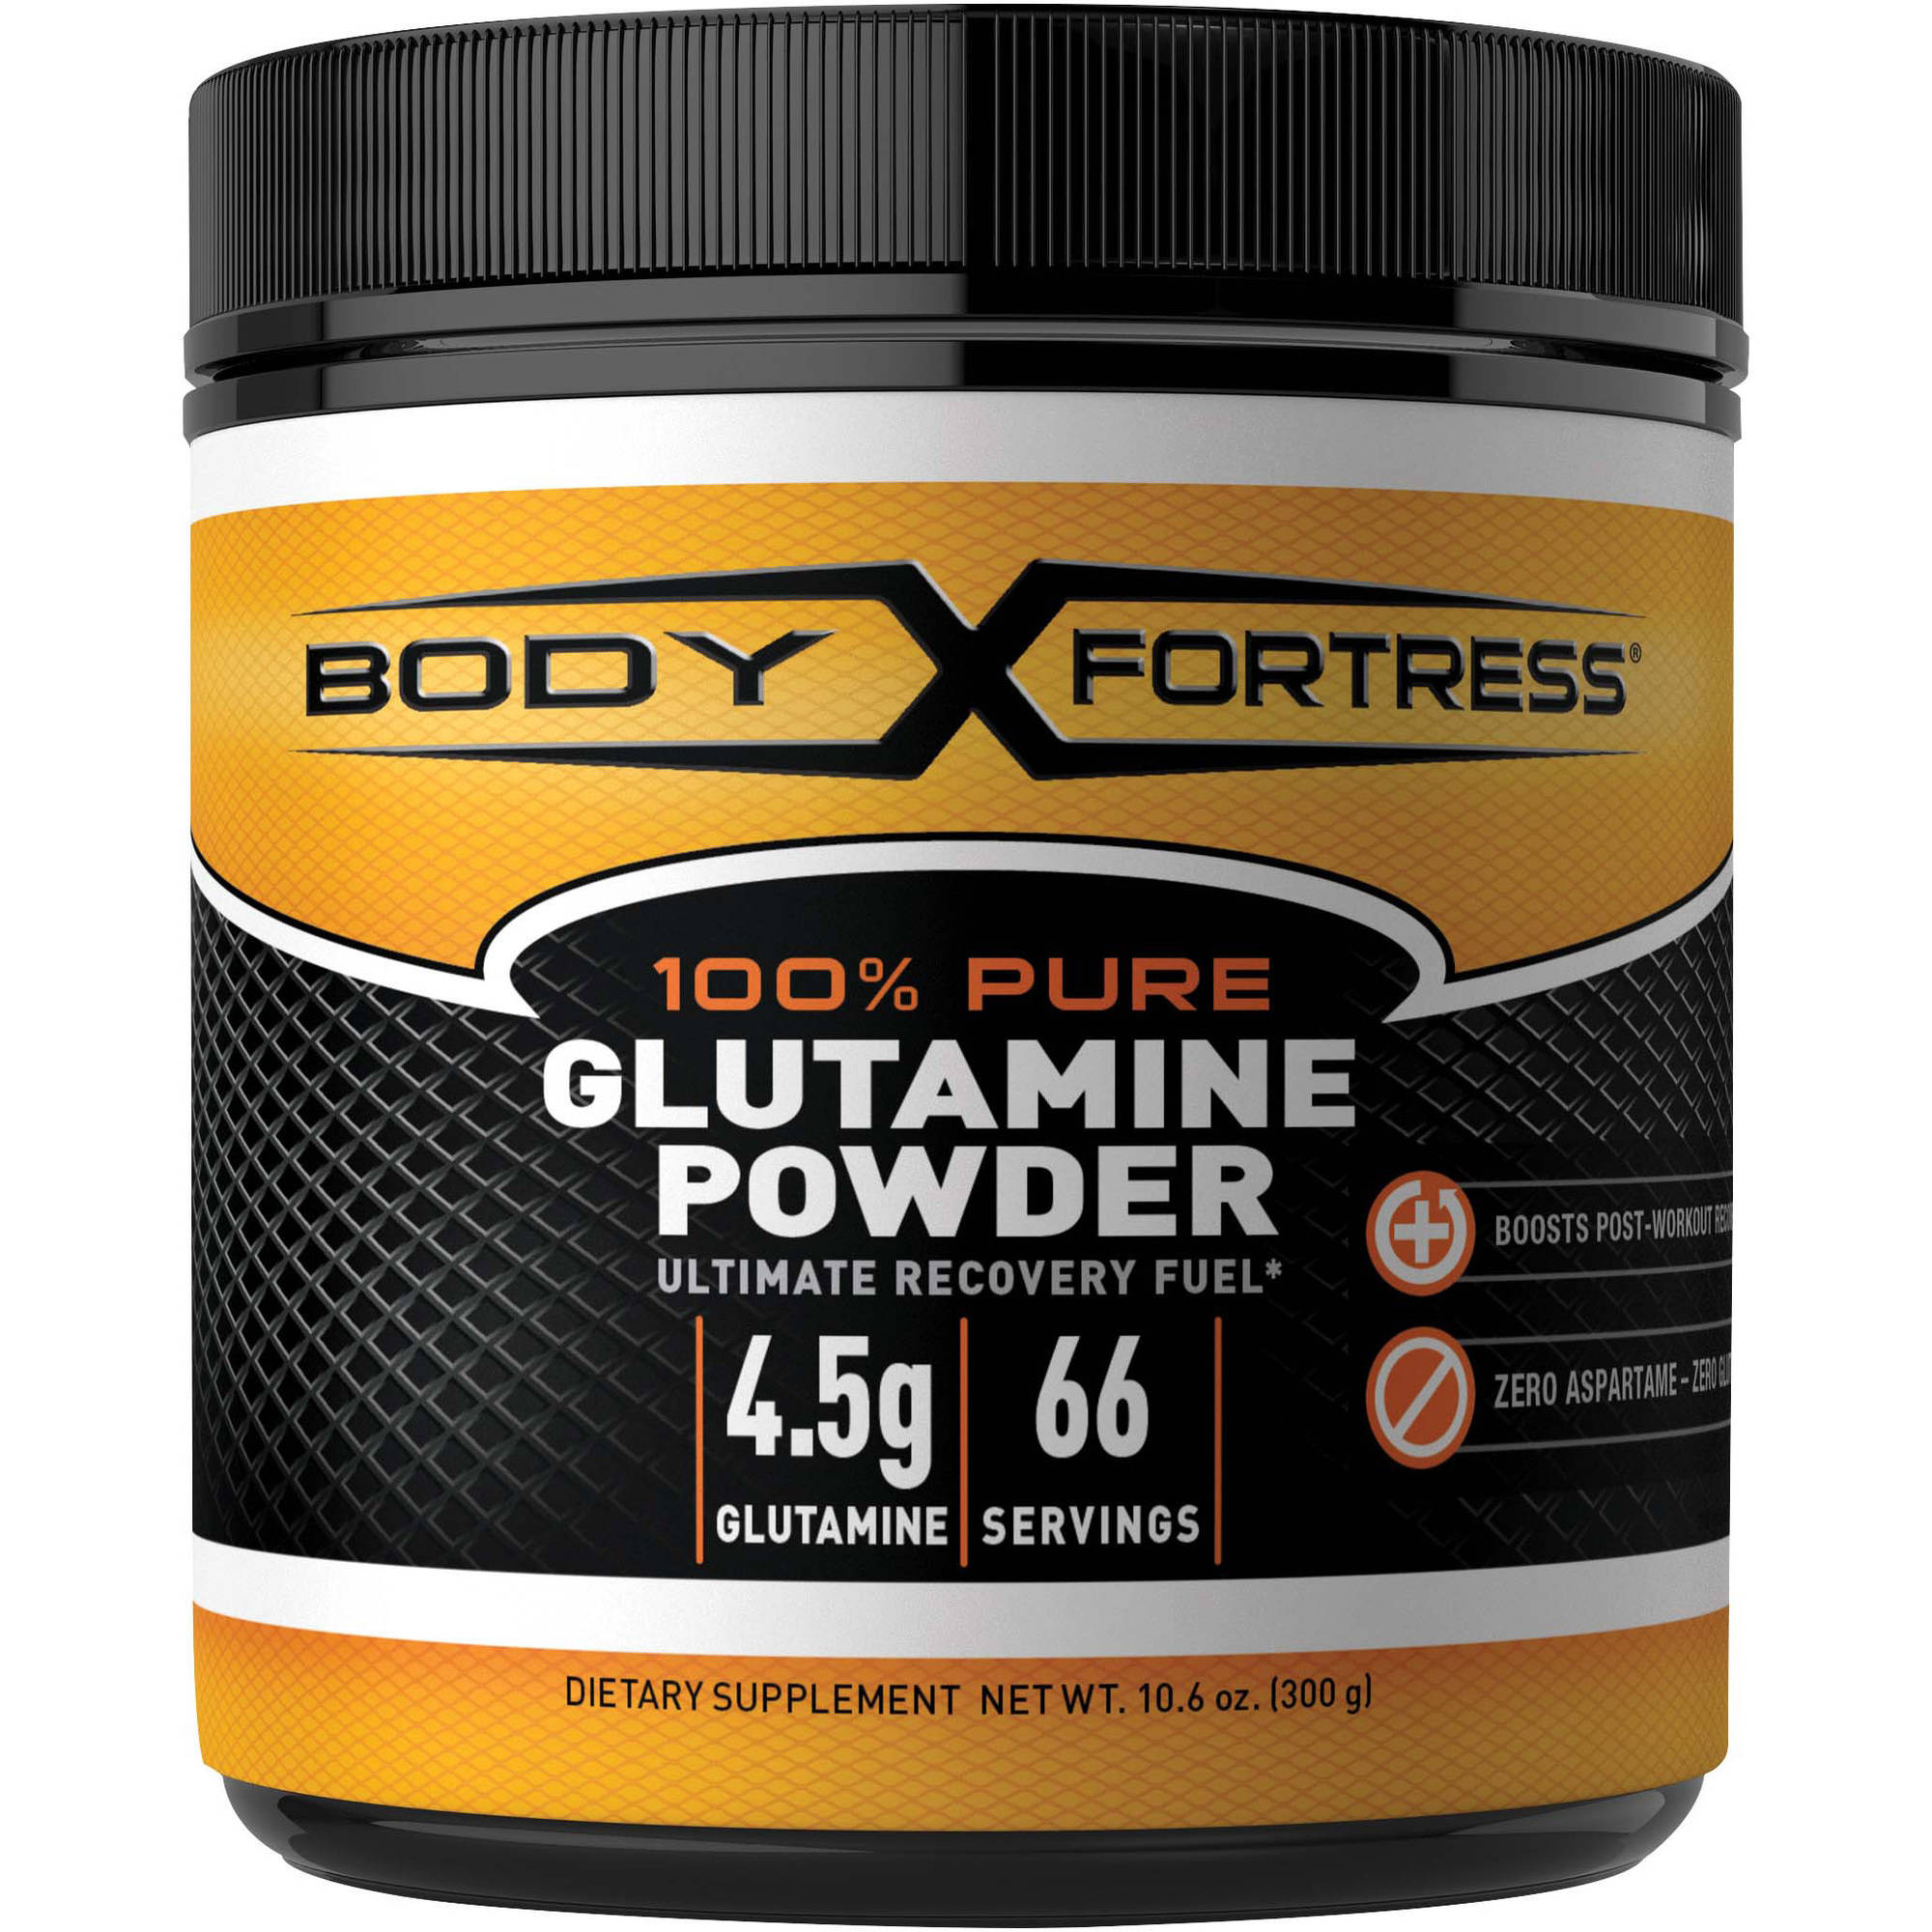 Body Fortress L-Glutamine Powder, 10.6 oz